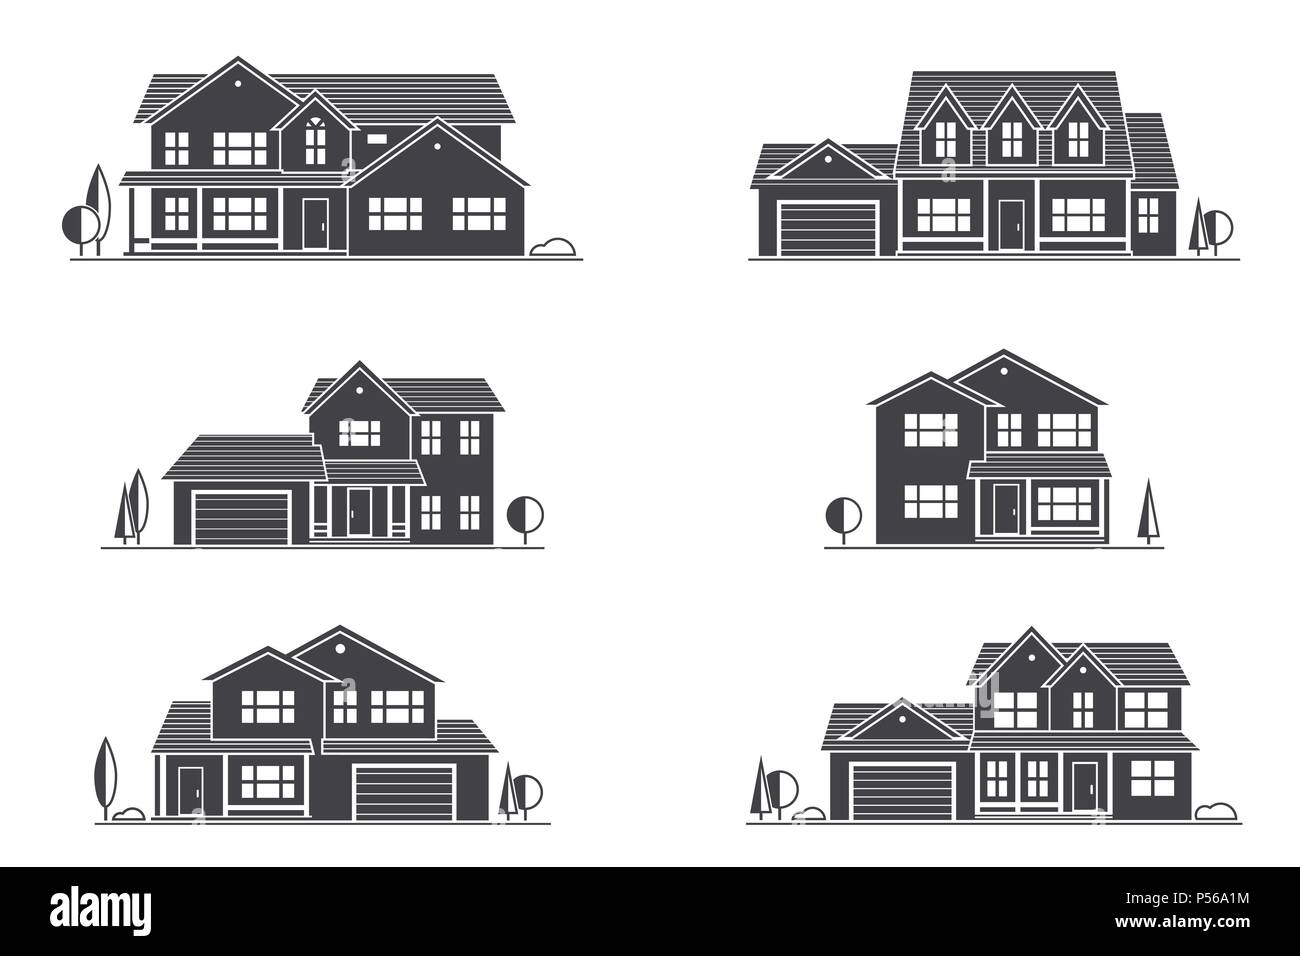 vector silhouette suburban american house for web design and